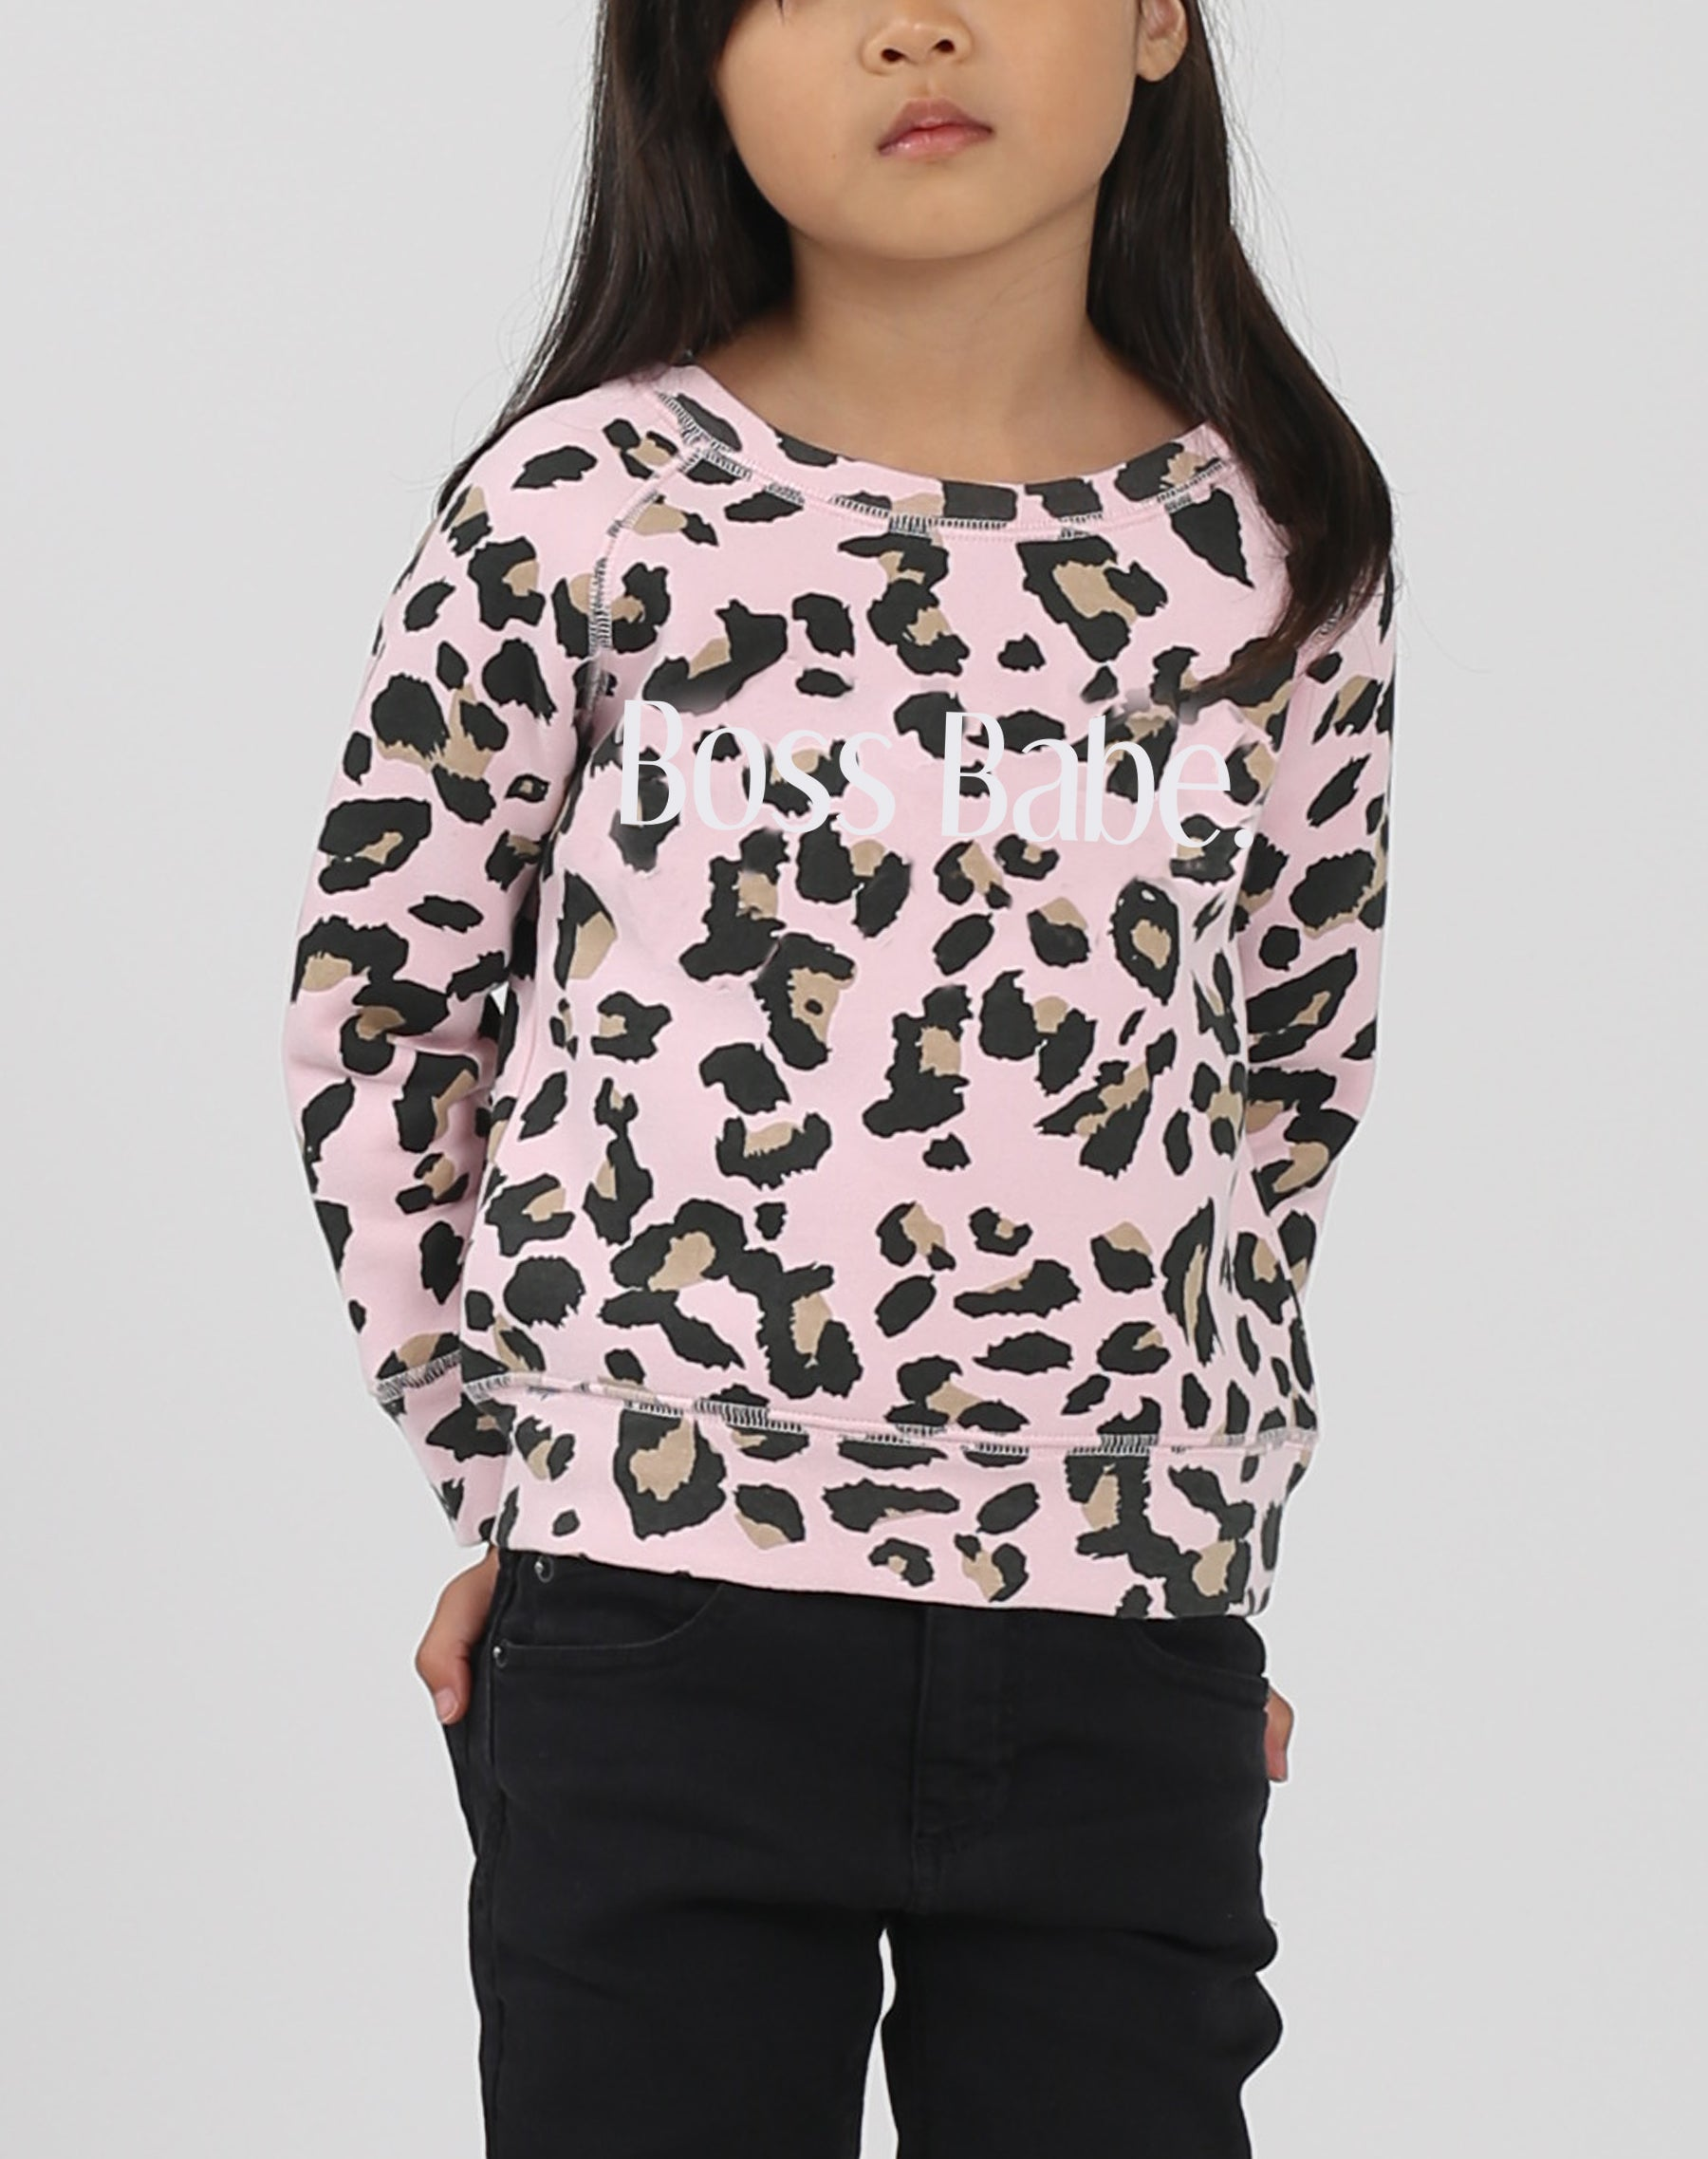 This is a photo of a model wearing the little babes boss babe crew neck sweatshirt in pink leopard by brunette the label.